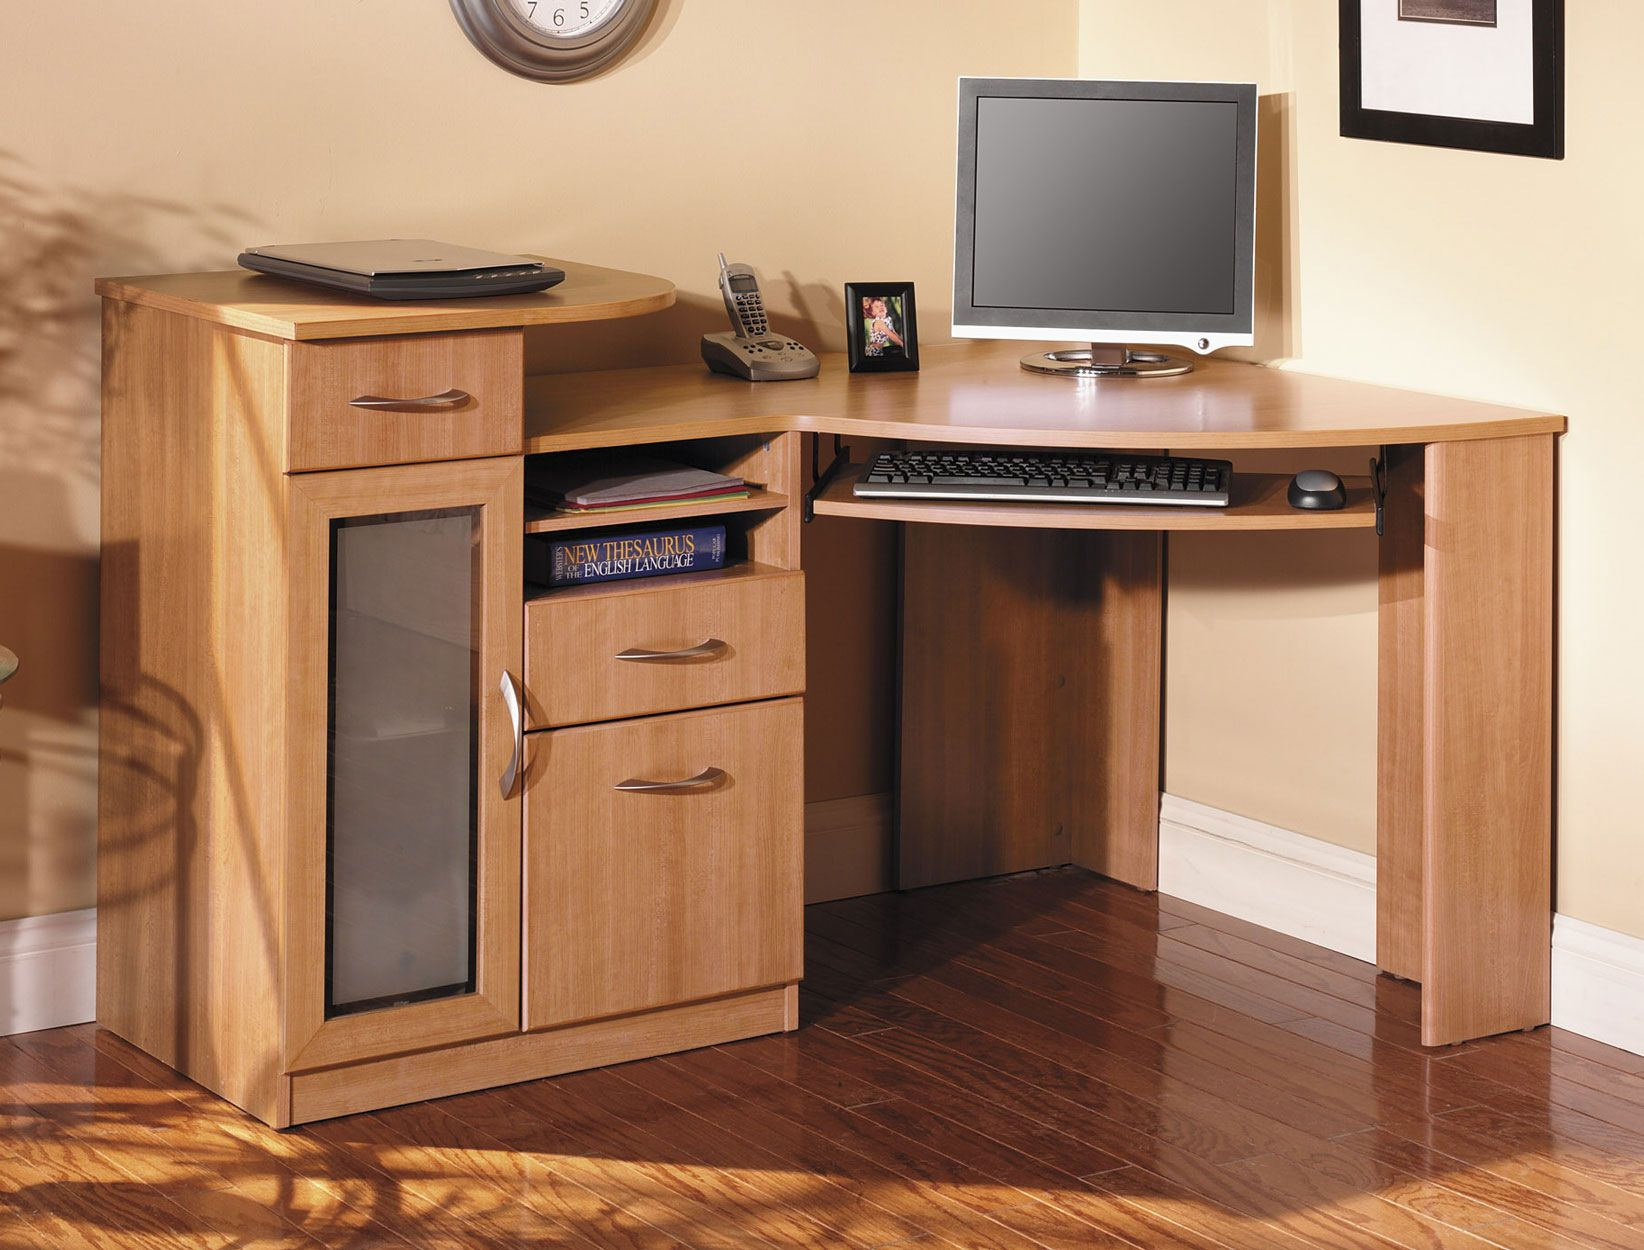 Small Office Desk With Locking Drawers   Desk Design Ideas Check More At  Http://www.sewcraftyjenn.com/small Office Desk With Locking Drawers/